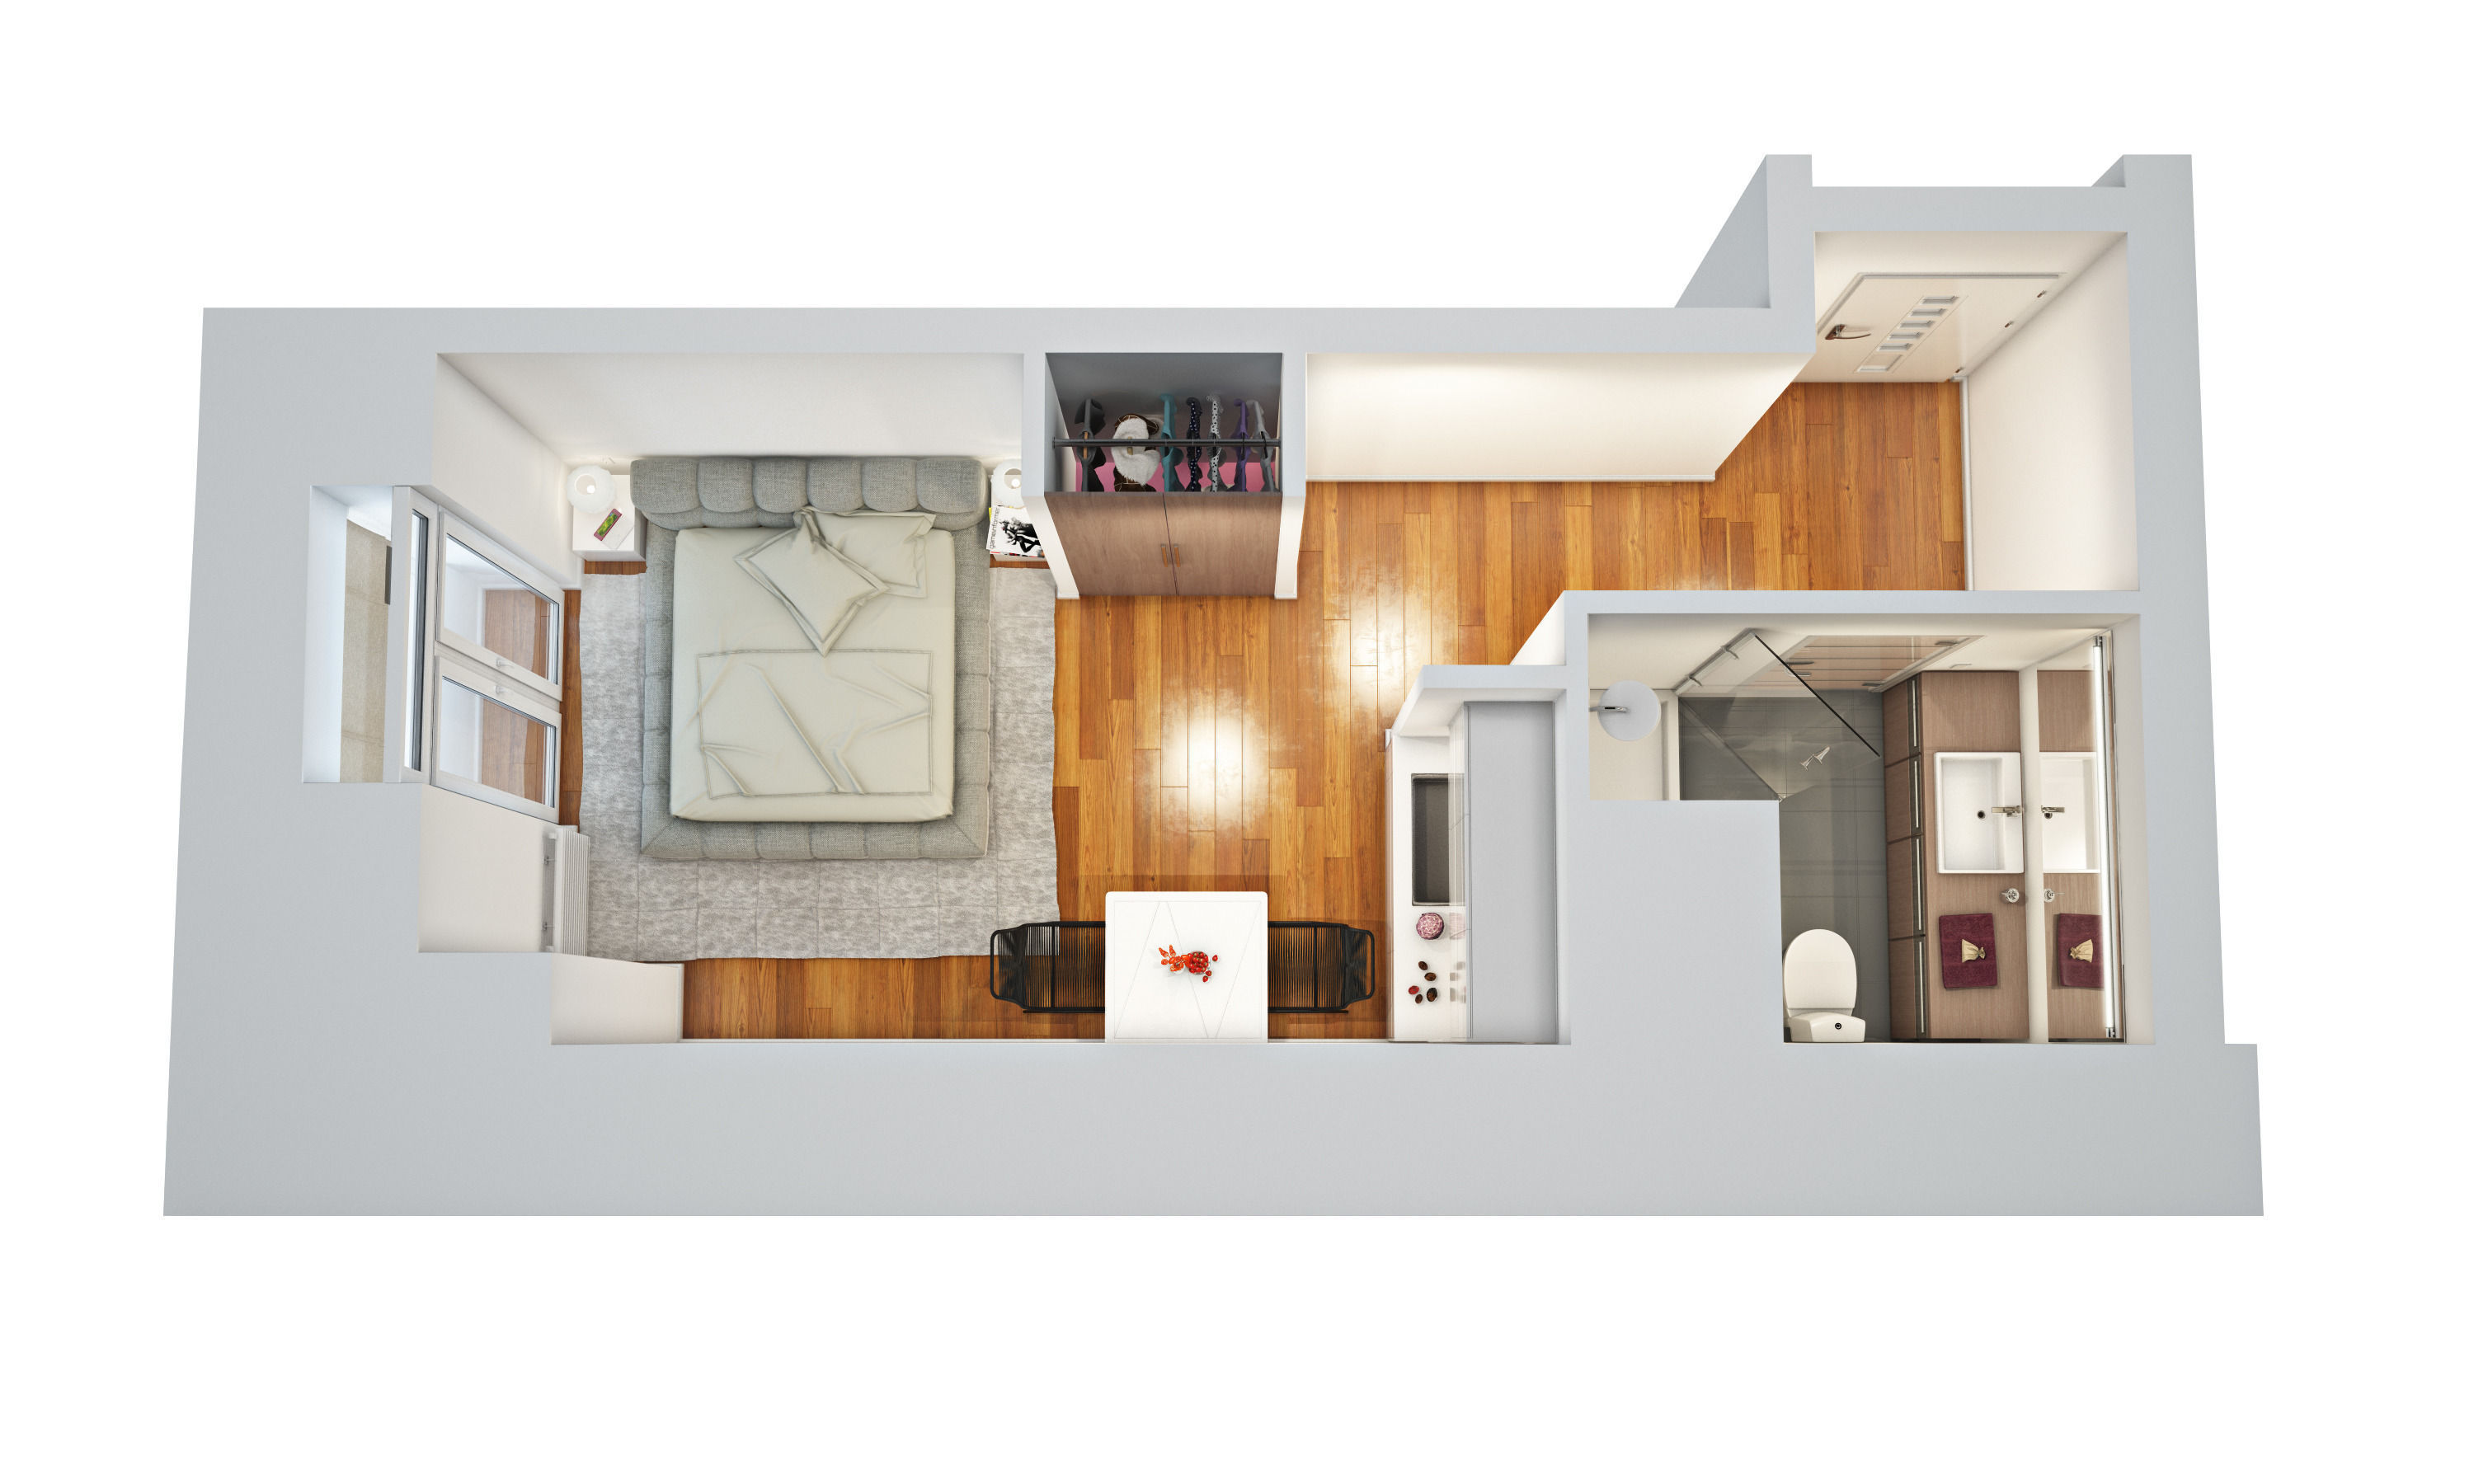 Floor Plan 3d Model Max Obj Mtl 1 ...